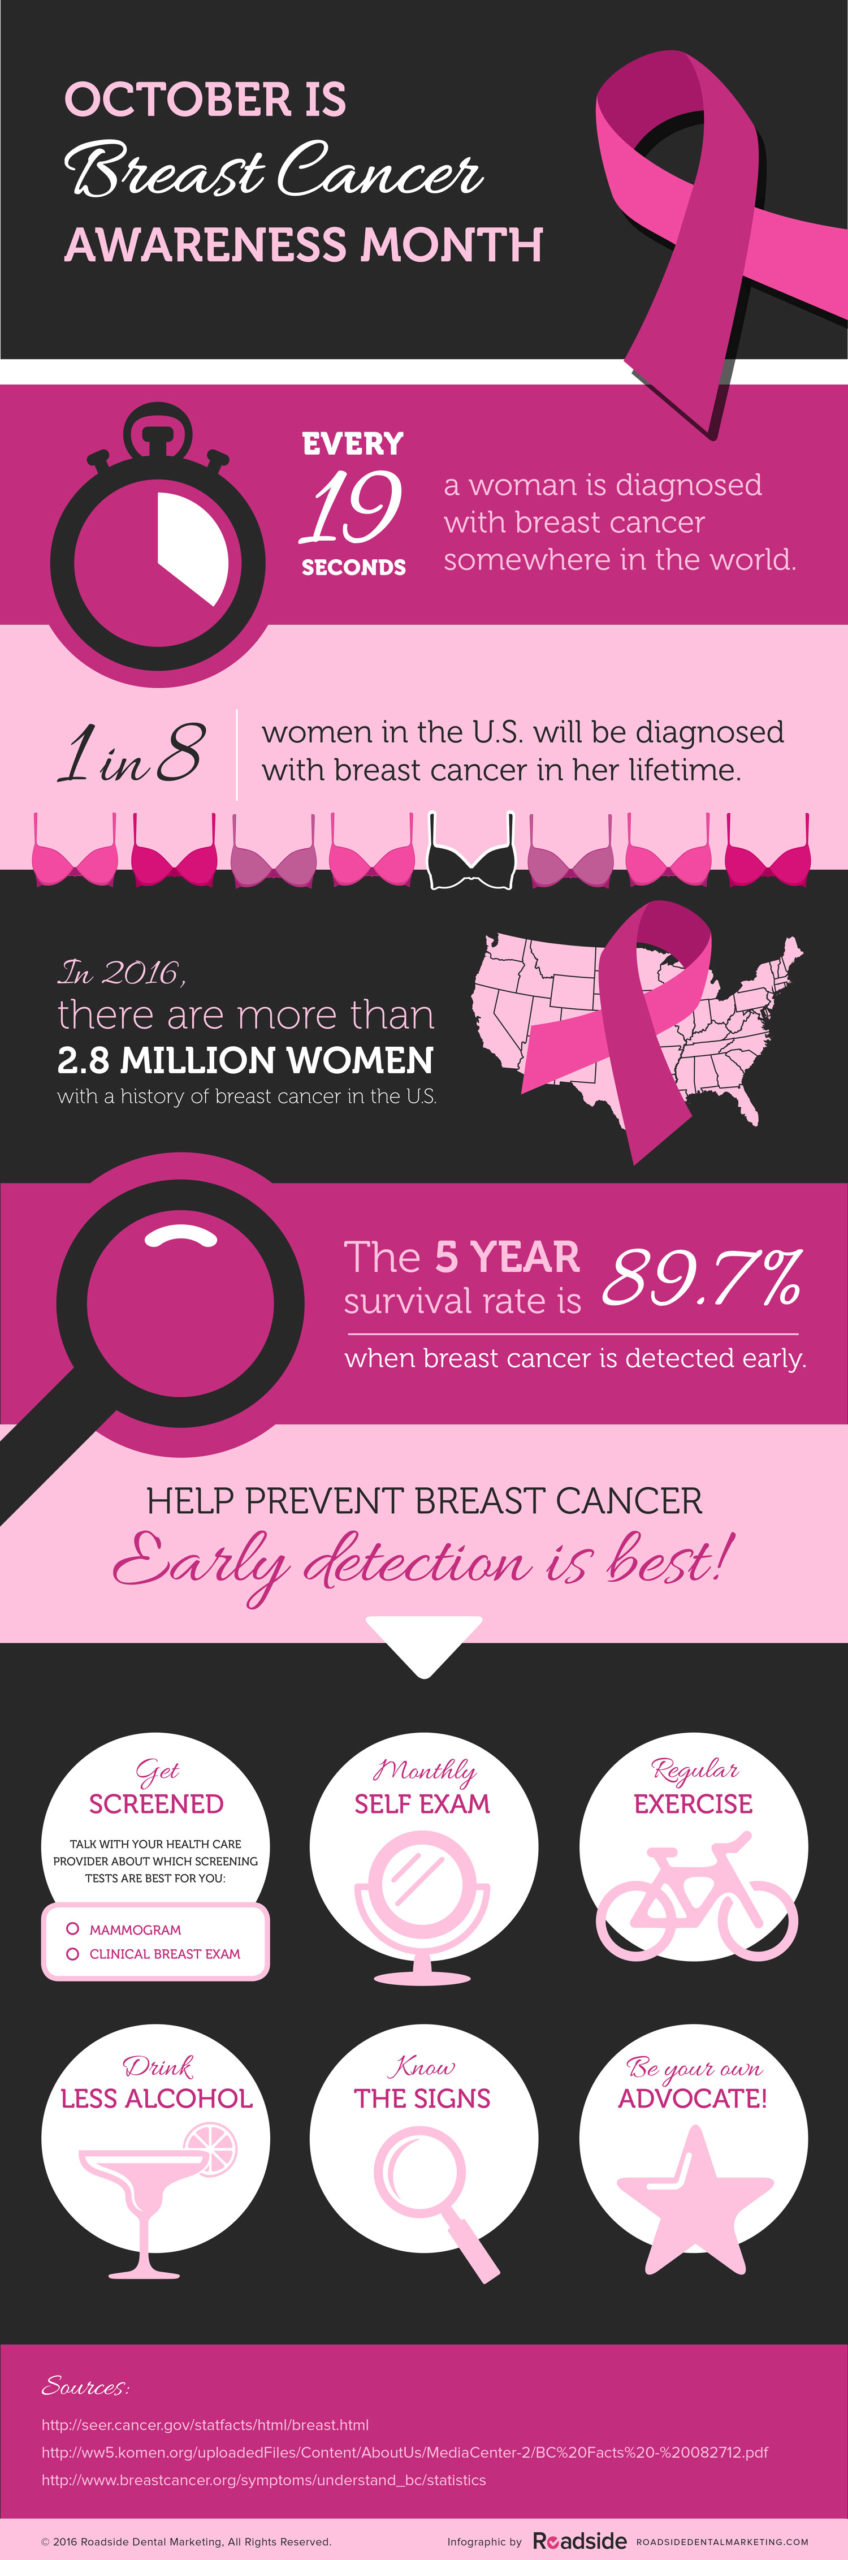 Breast Cancer awareness month Infographic with statistics and preventative tips